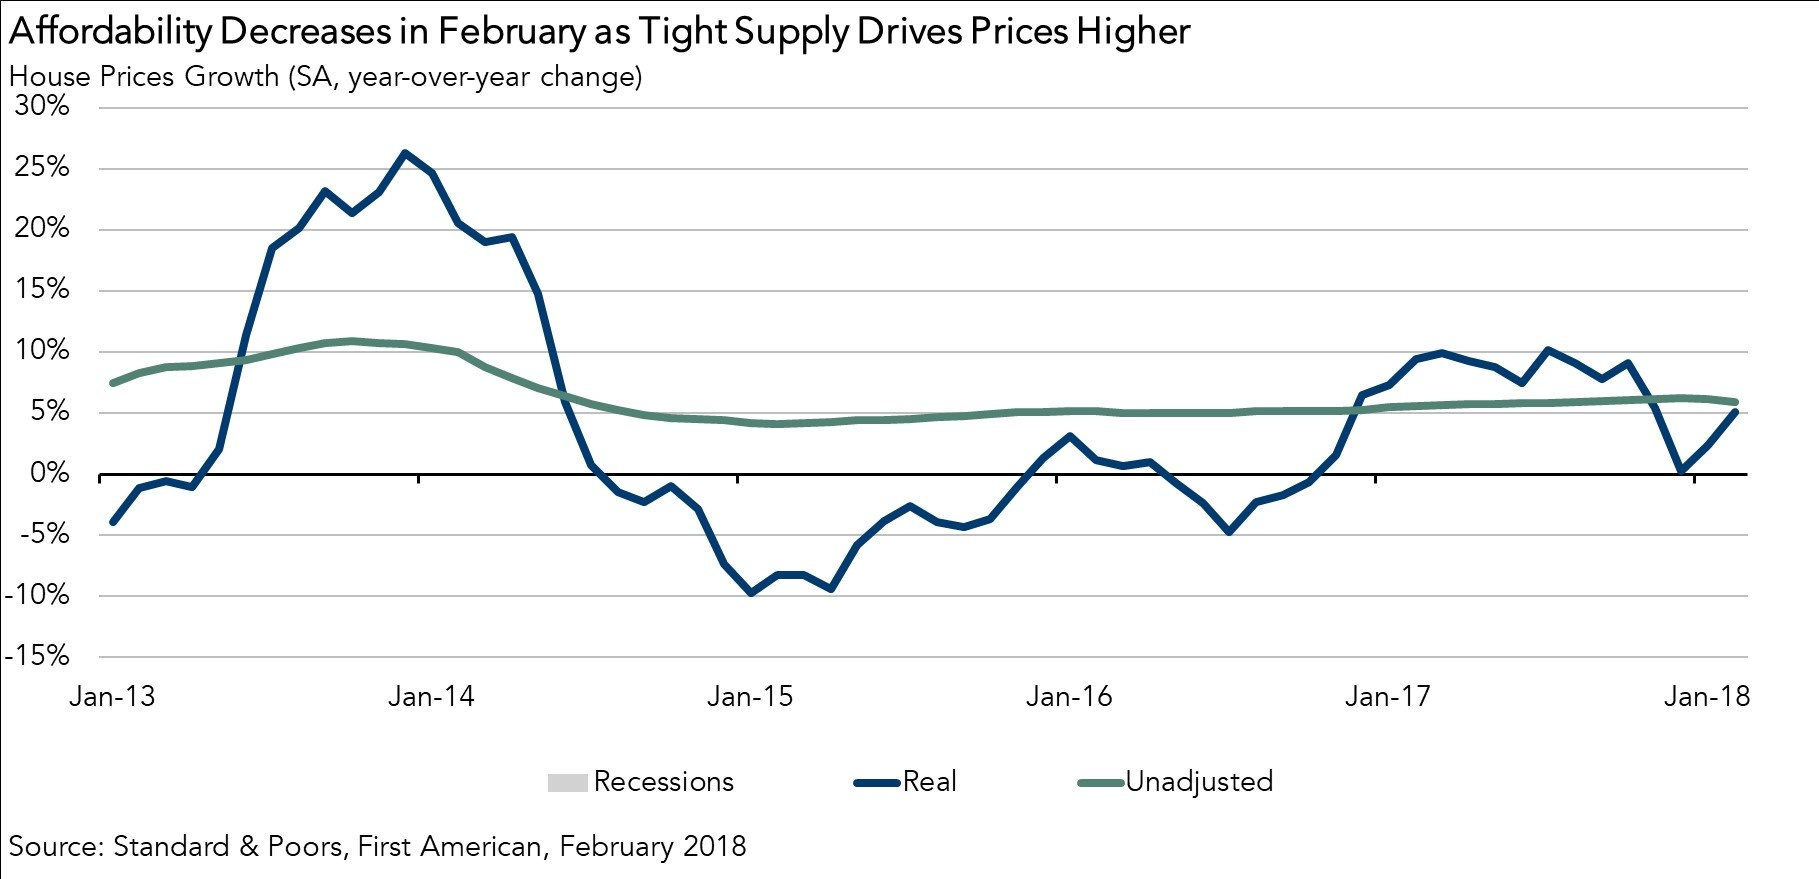 Housing Affordability Decreases in February as Tight Supply Drives Prices Higher Chart 2018